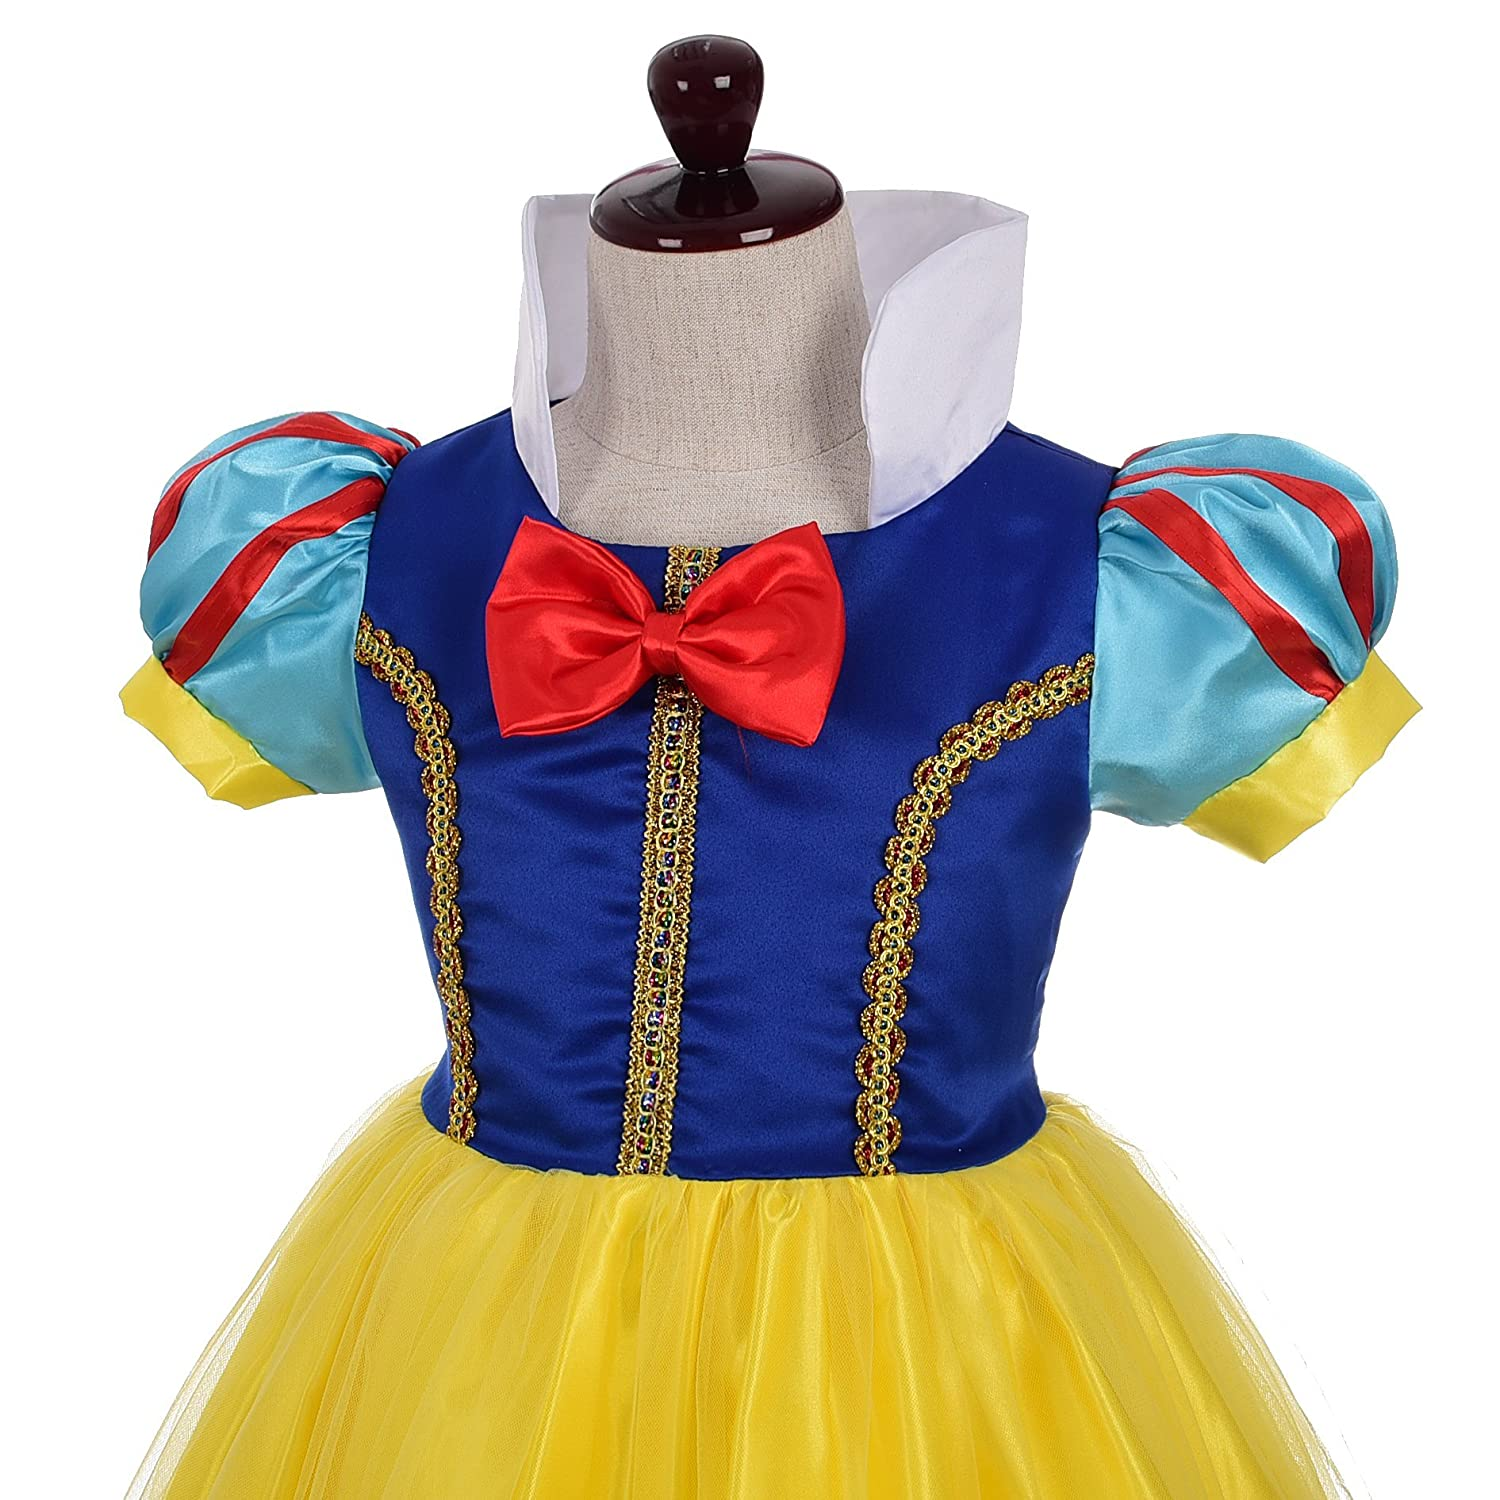 Lito Angels Girls Princess Snow White Costume Fancy Dresses Up Halloween Outfit with Headband